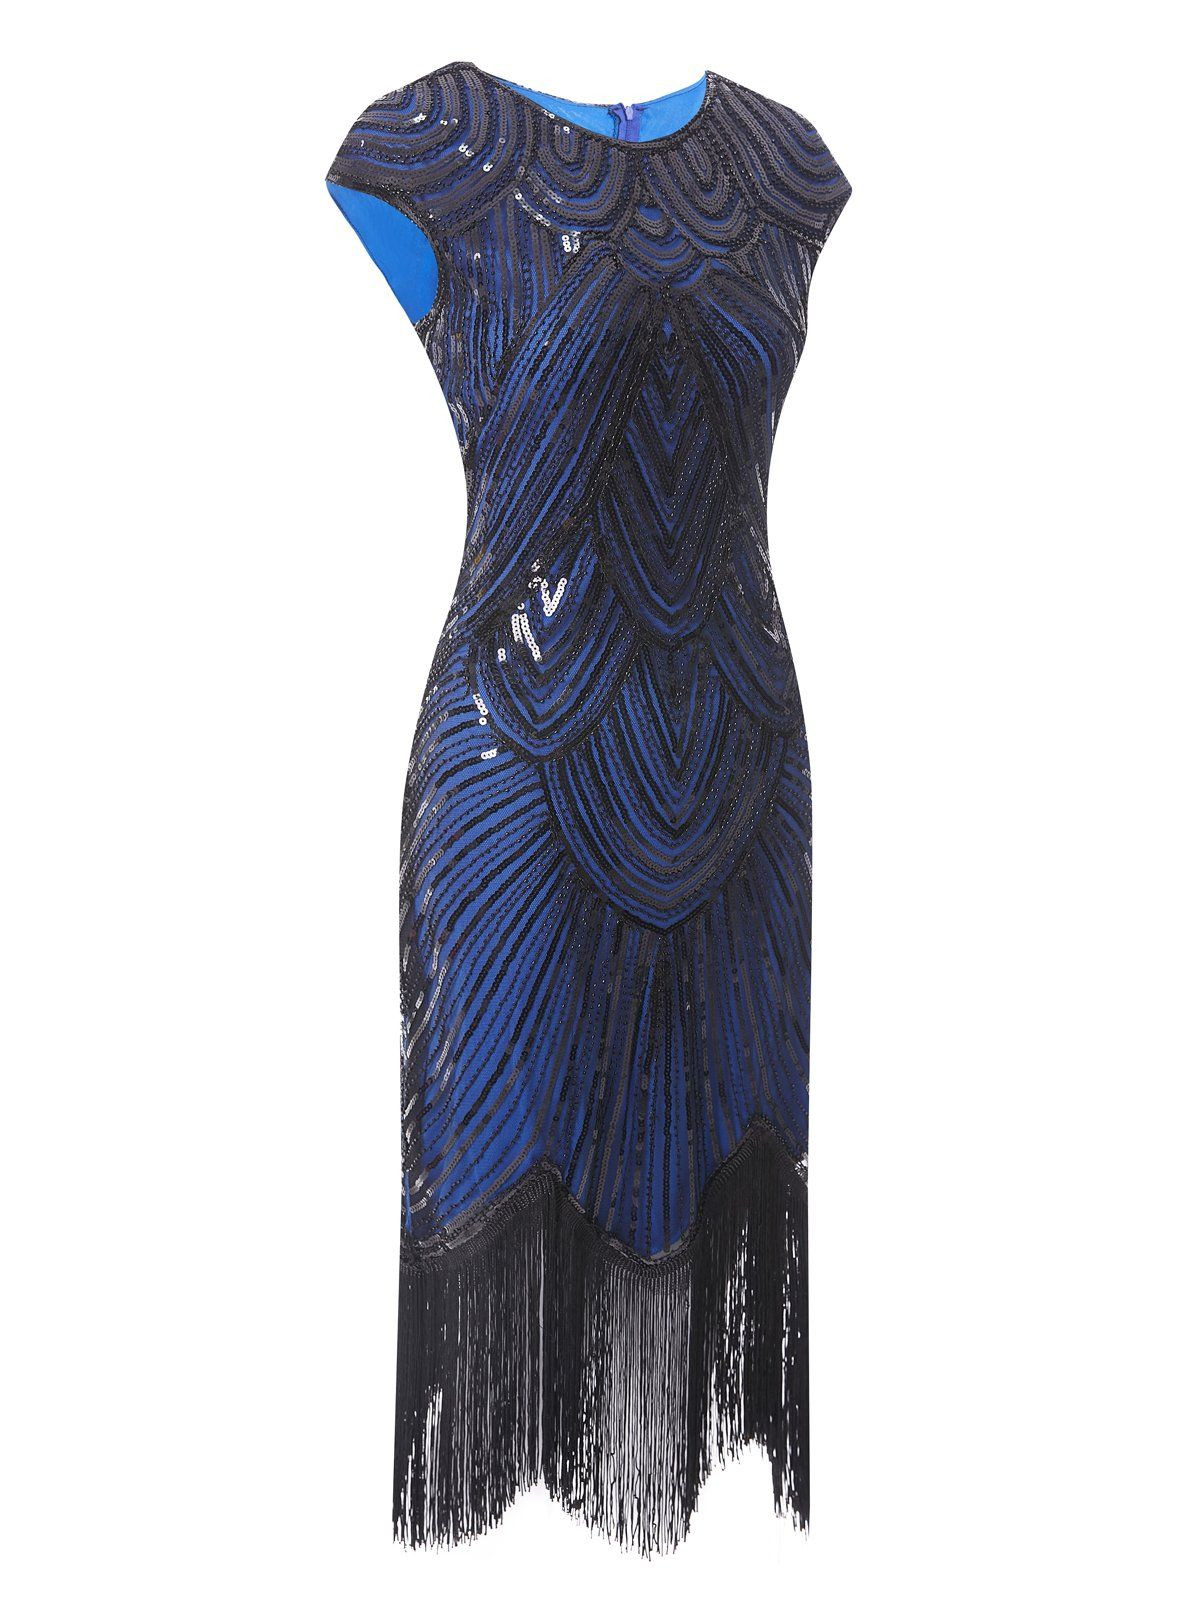 1920S Sequin Beaded Fringed Dress  Retro Stage  Chic